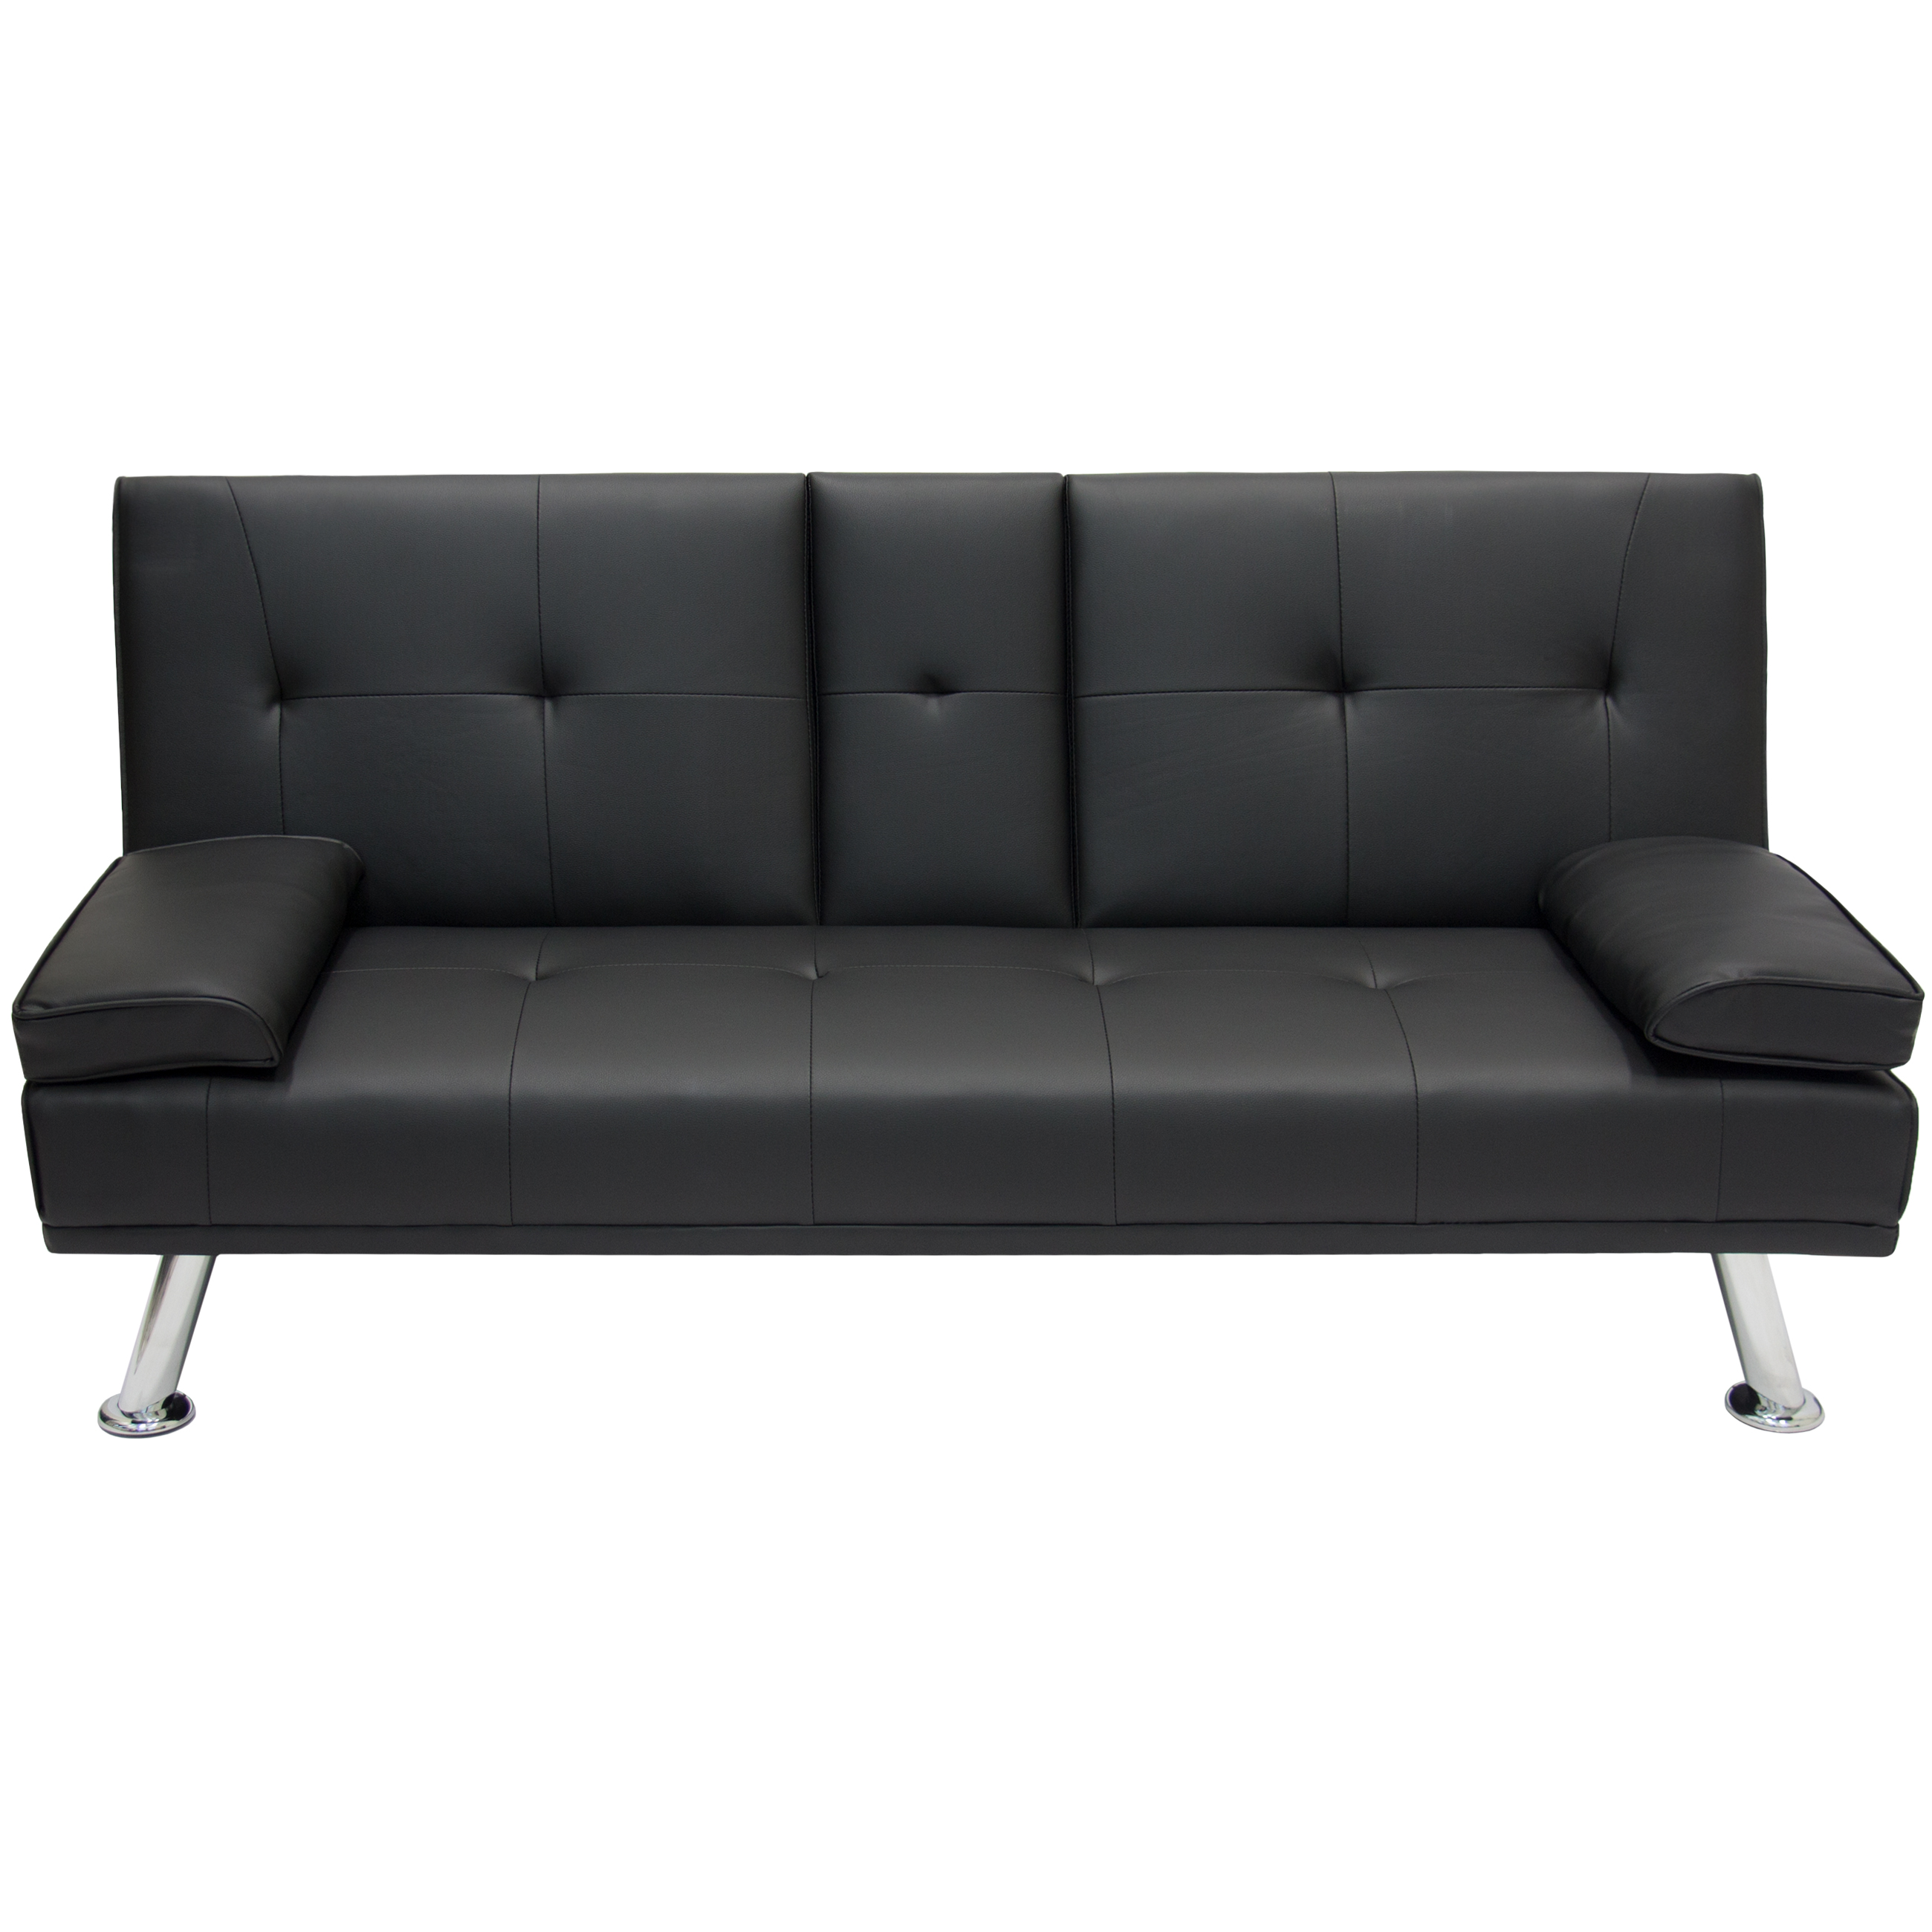 fold down sofa beds uk furniture to go with black leather entertainment futon bed up